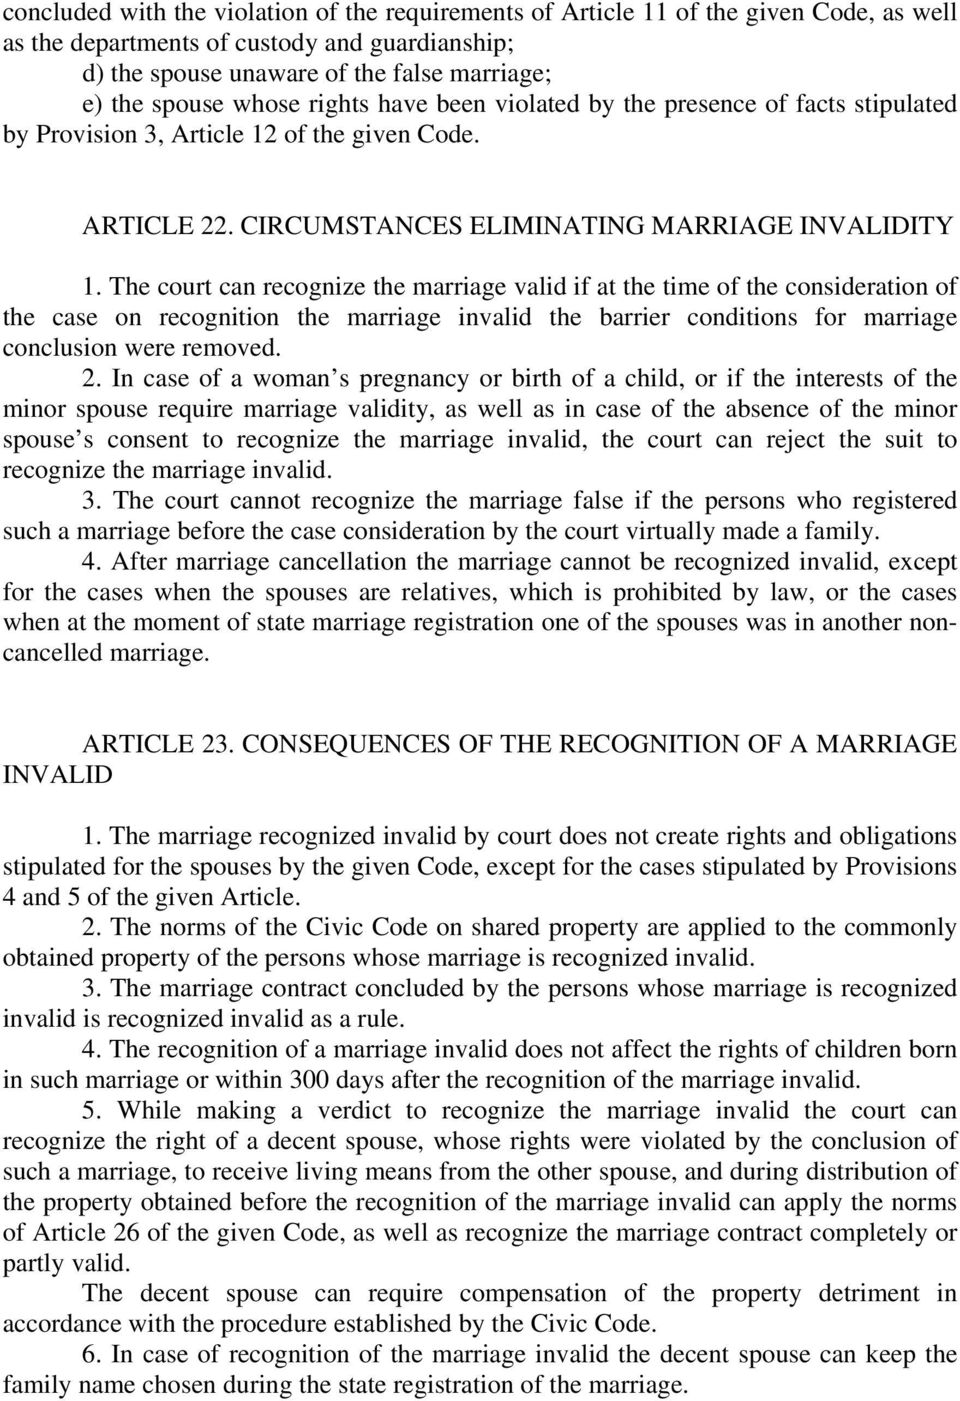 The court can recognize the marriage valid if at the time of the consideration of the case on recognition the marriage invalid the barrier conditions for marriage conclusion were removed. 2.